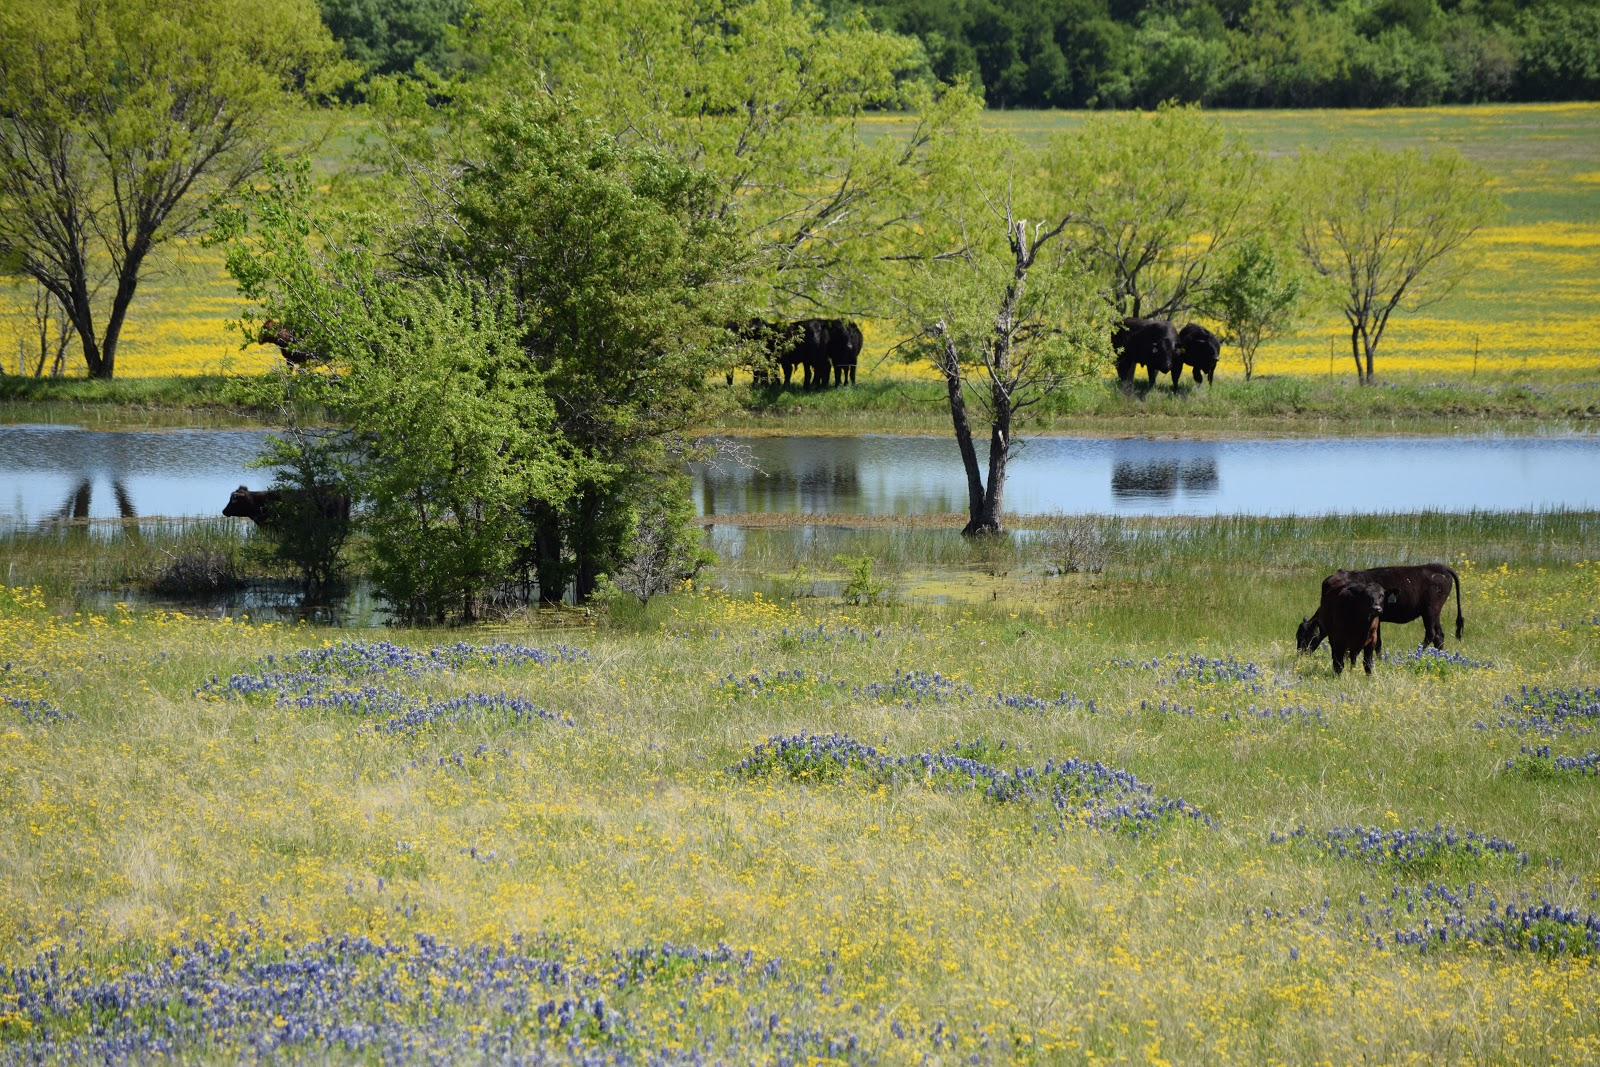 Travel for a Purpose: Texas—Visiting Ennis for Bluebonnet ...